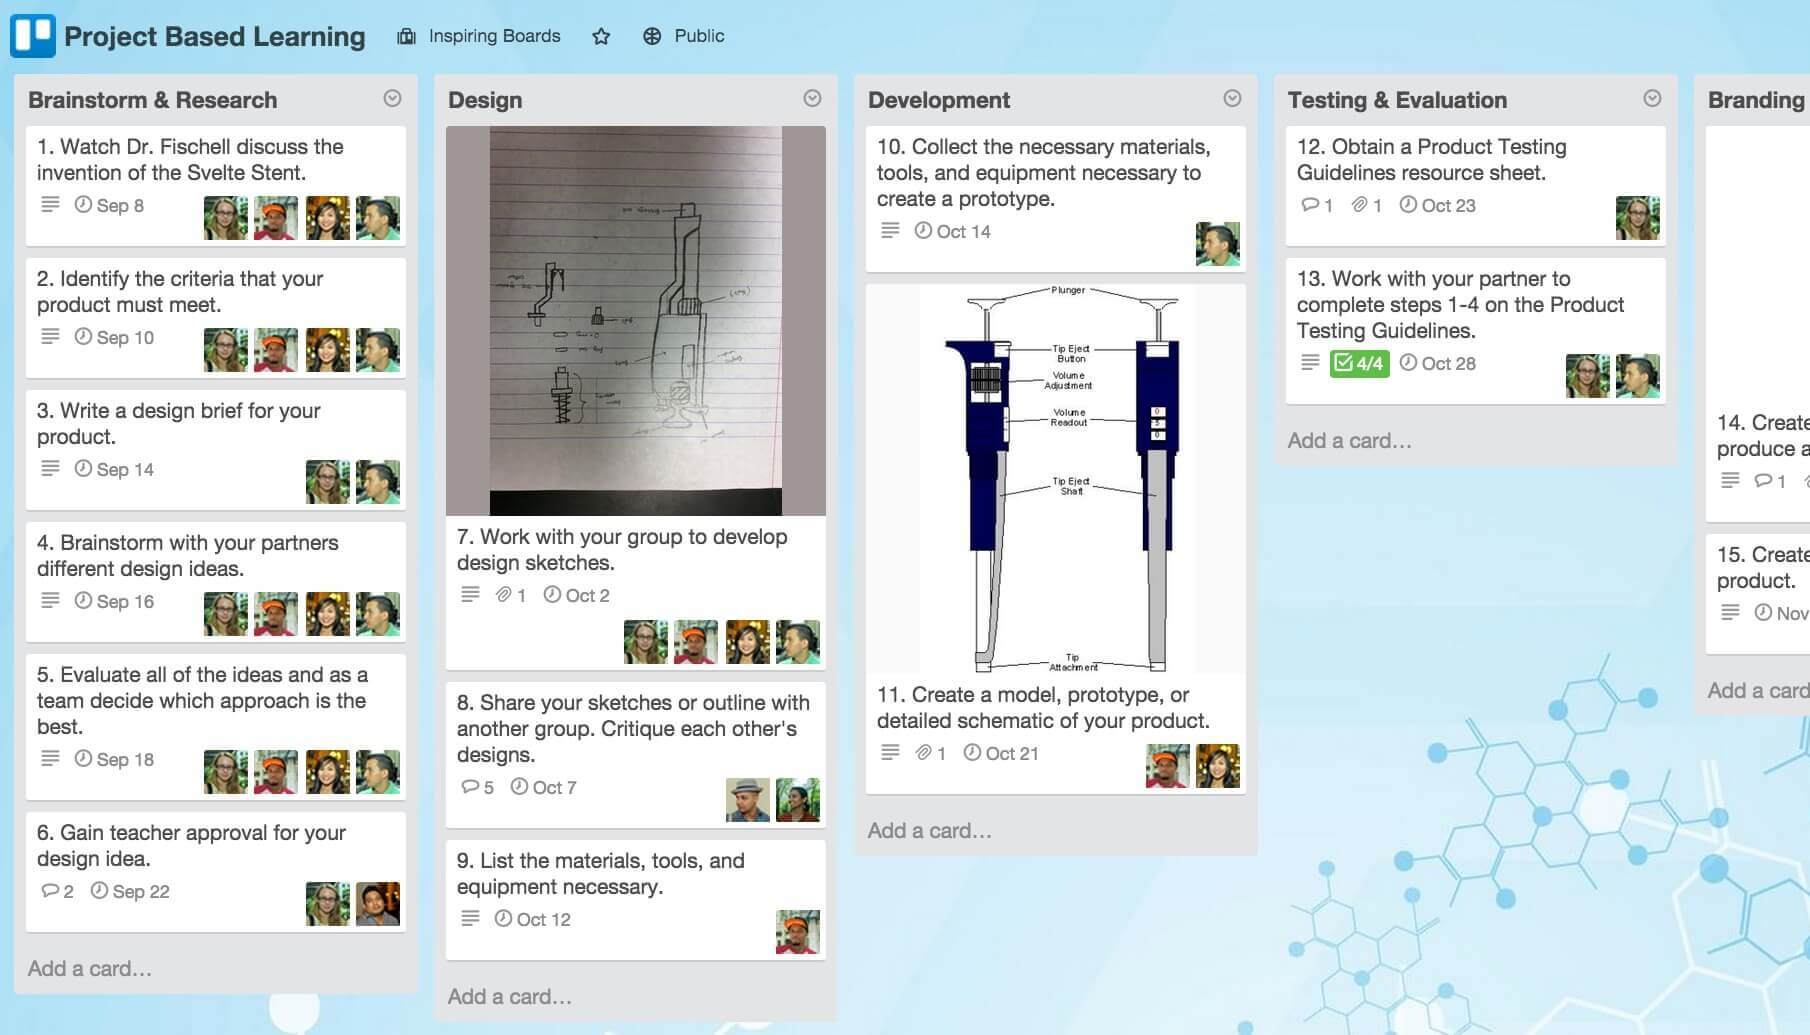 Project-based learning Trello boards